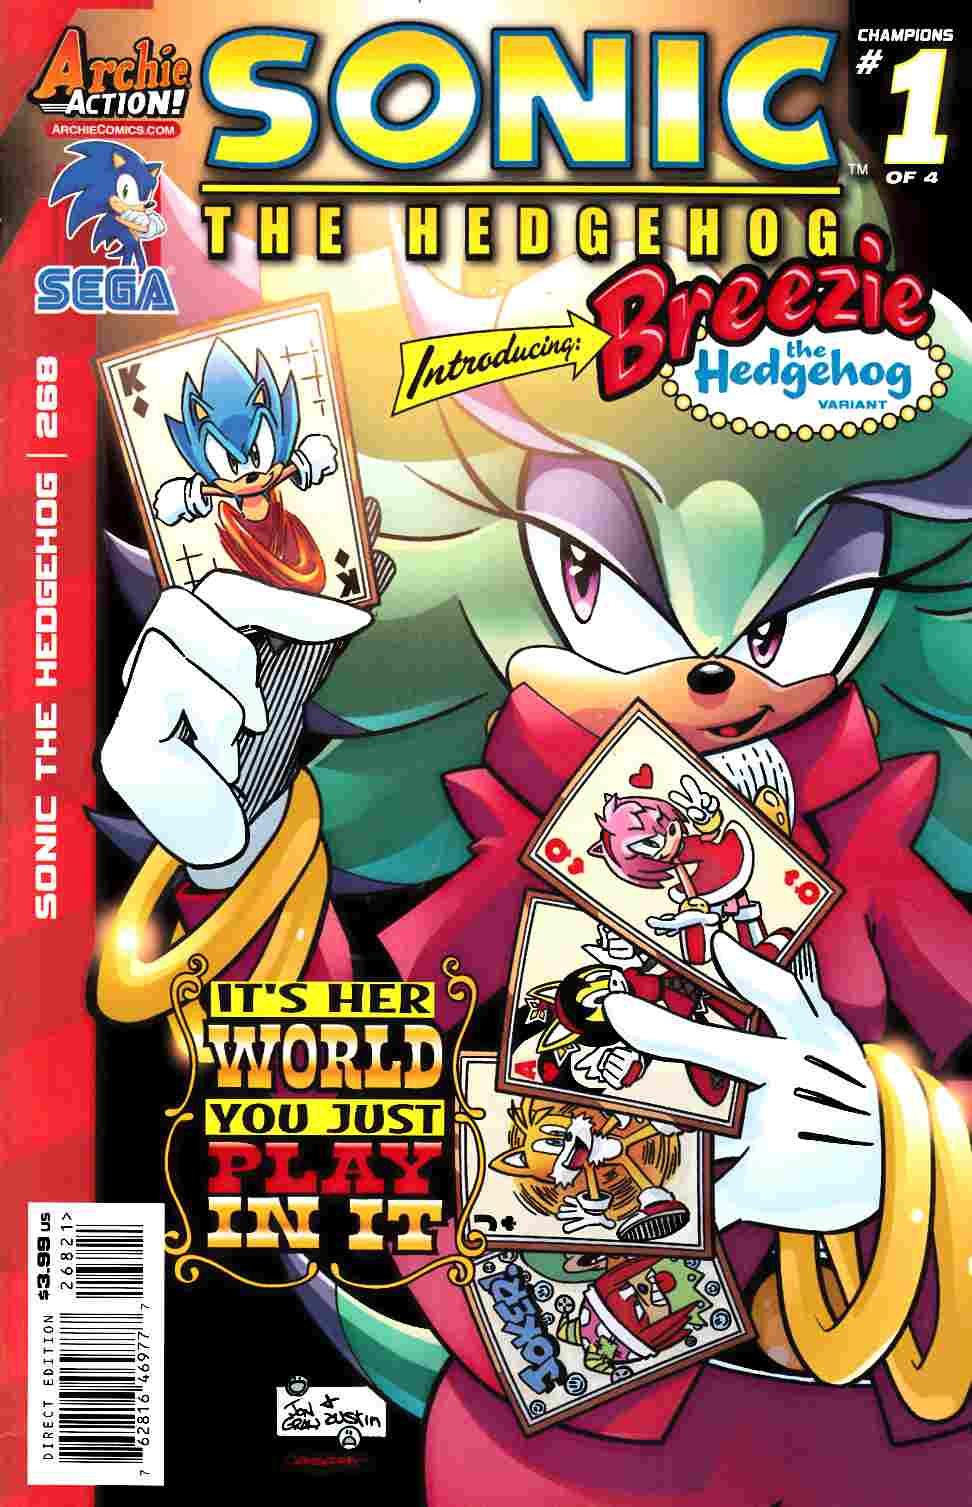 Sonic The Hedgehog 268 Breezie Variant Cover Archie Comic Dreamlandcomics Com Online Store